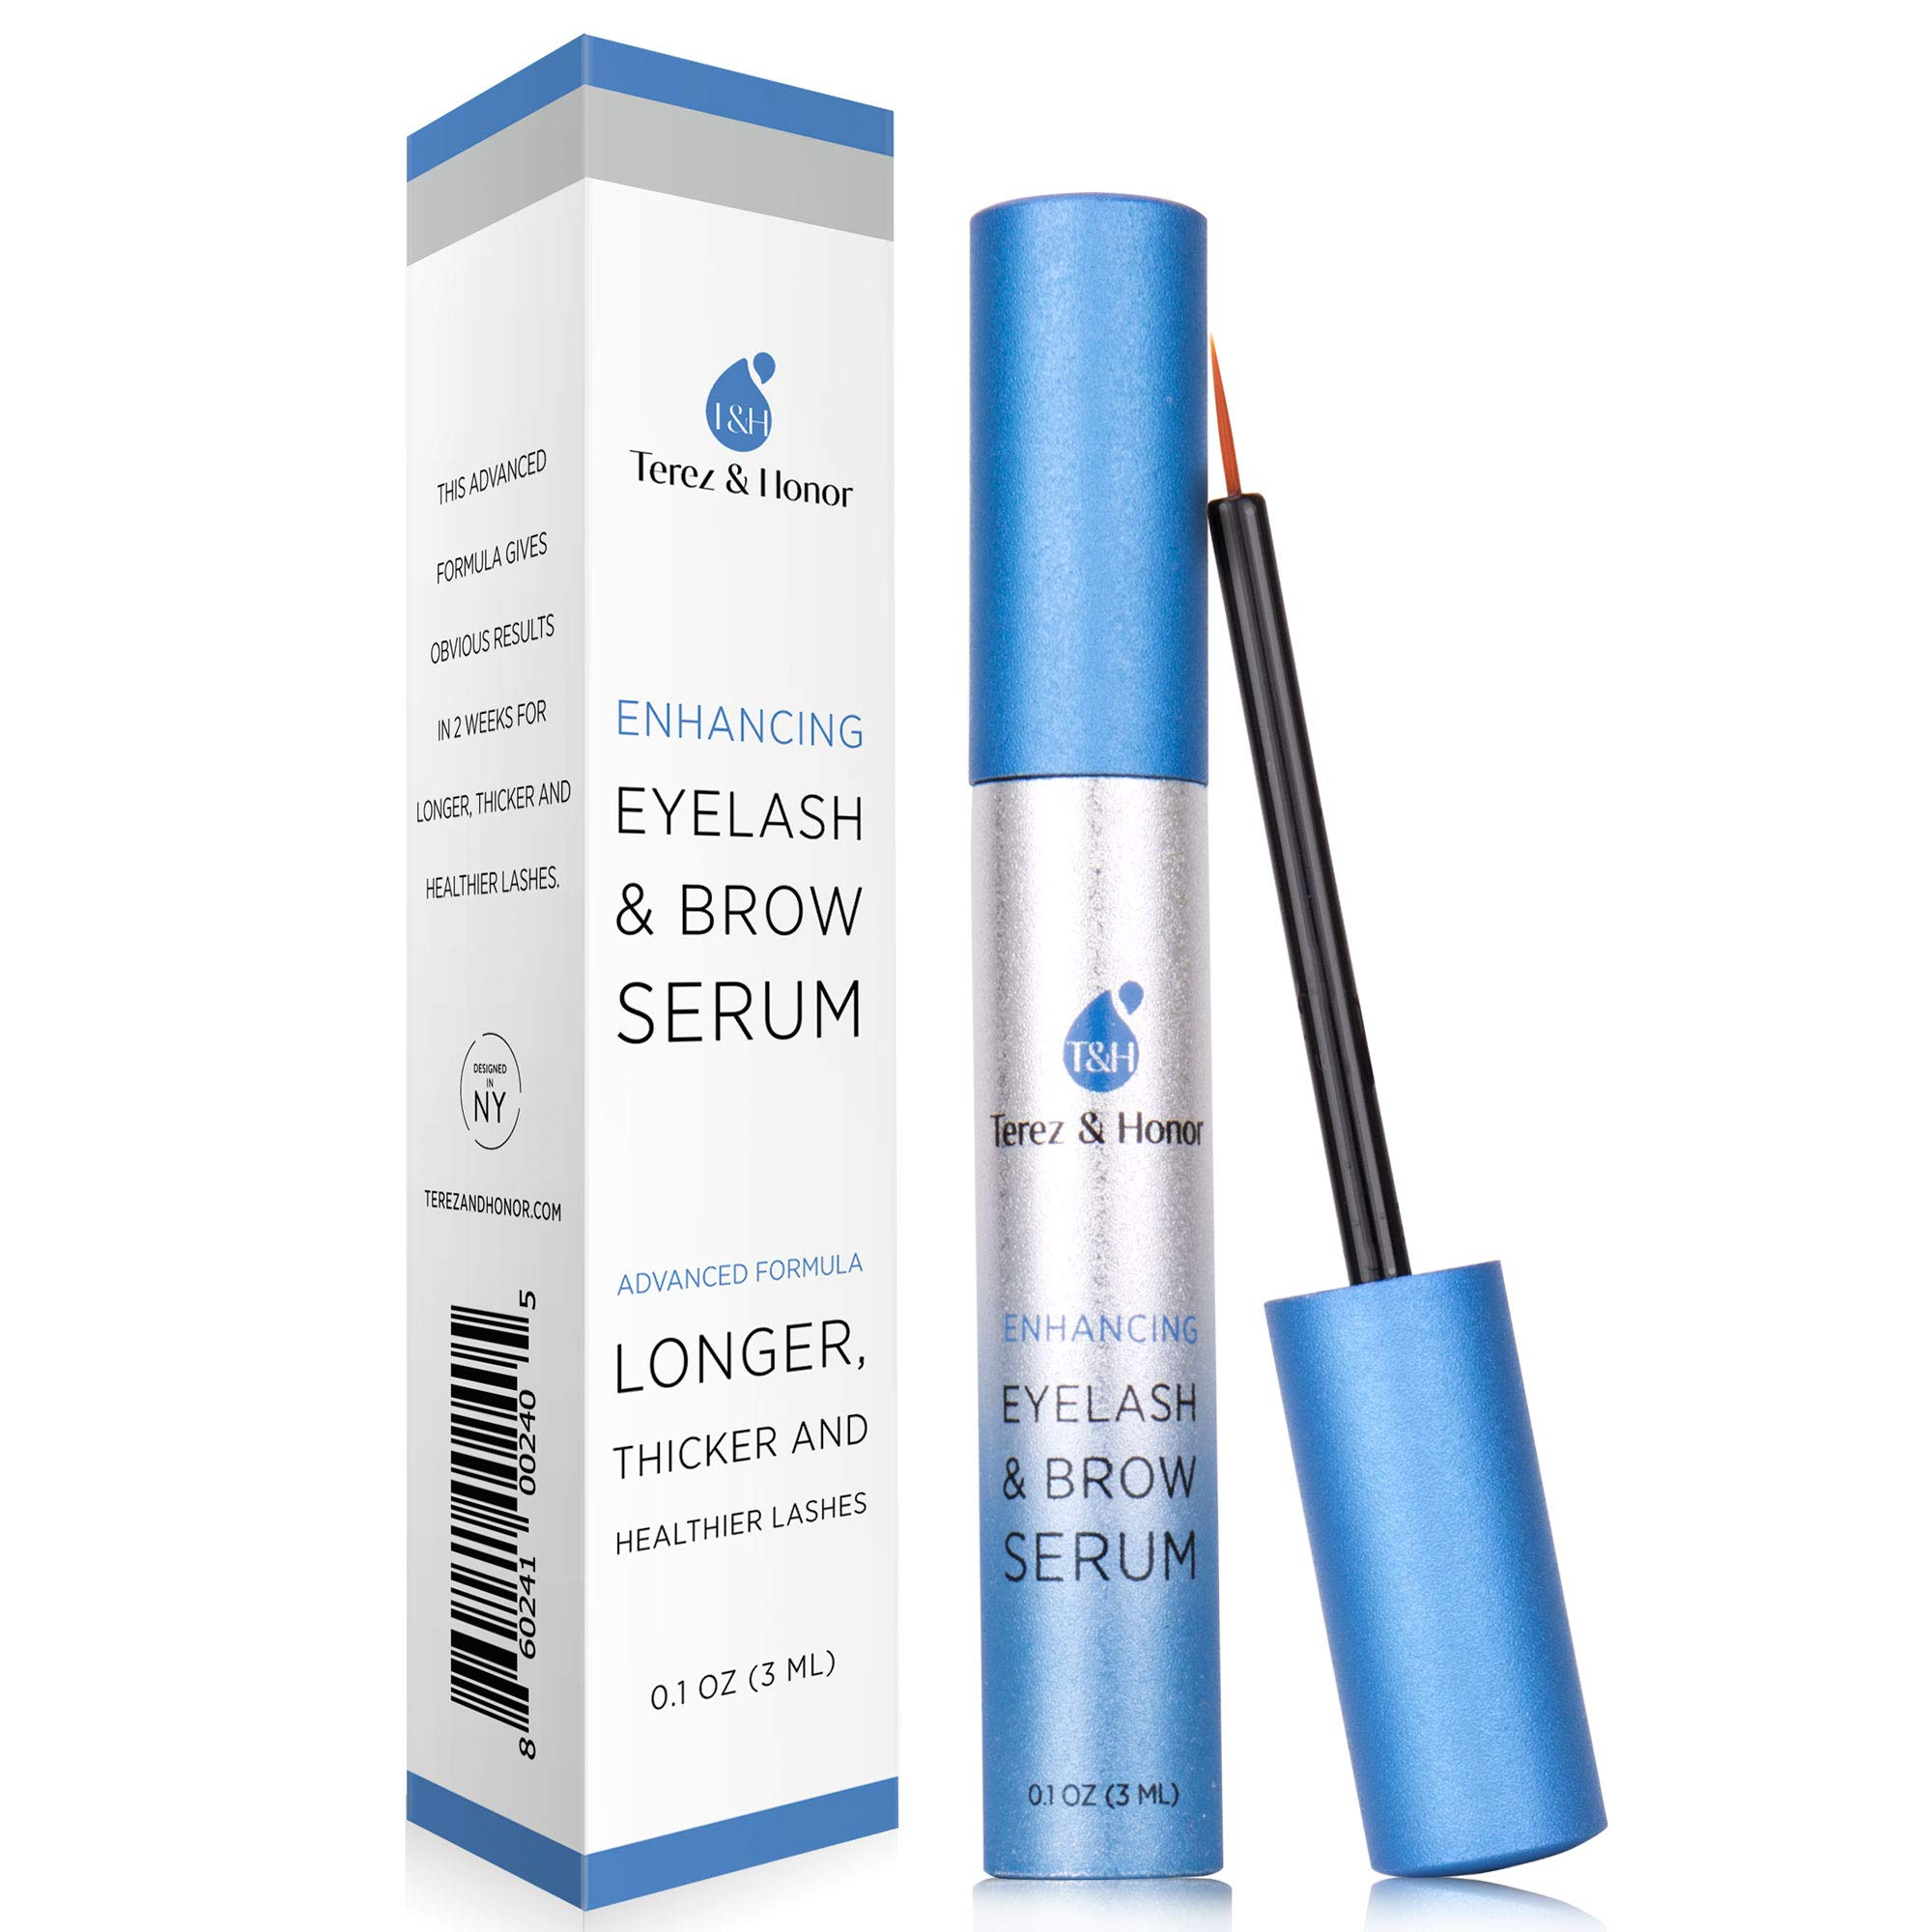 265dd838237 Natural Eyelash Growth Enhancer and Brow Serum for Long, Luscious Lashes  and Eyebrows. product